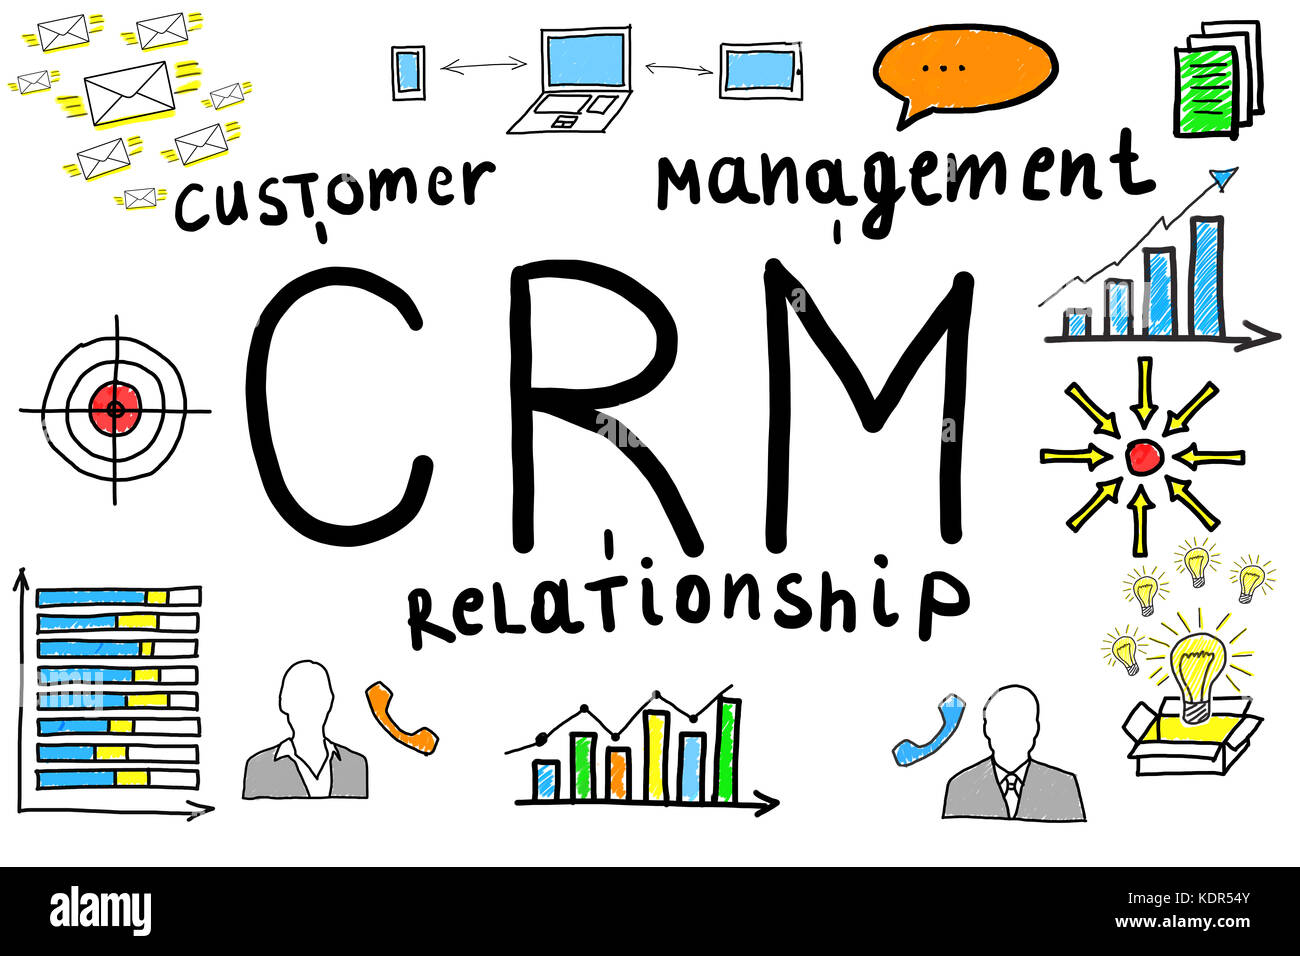 Illustrative Diagram Of Customer Relationship Management For Managing A Company On White Background - Stock Image